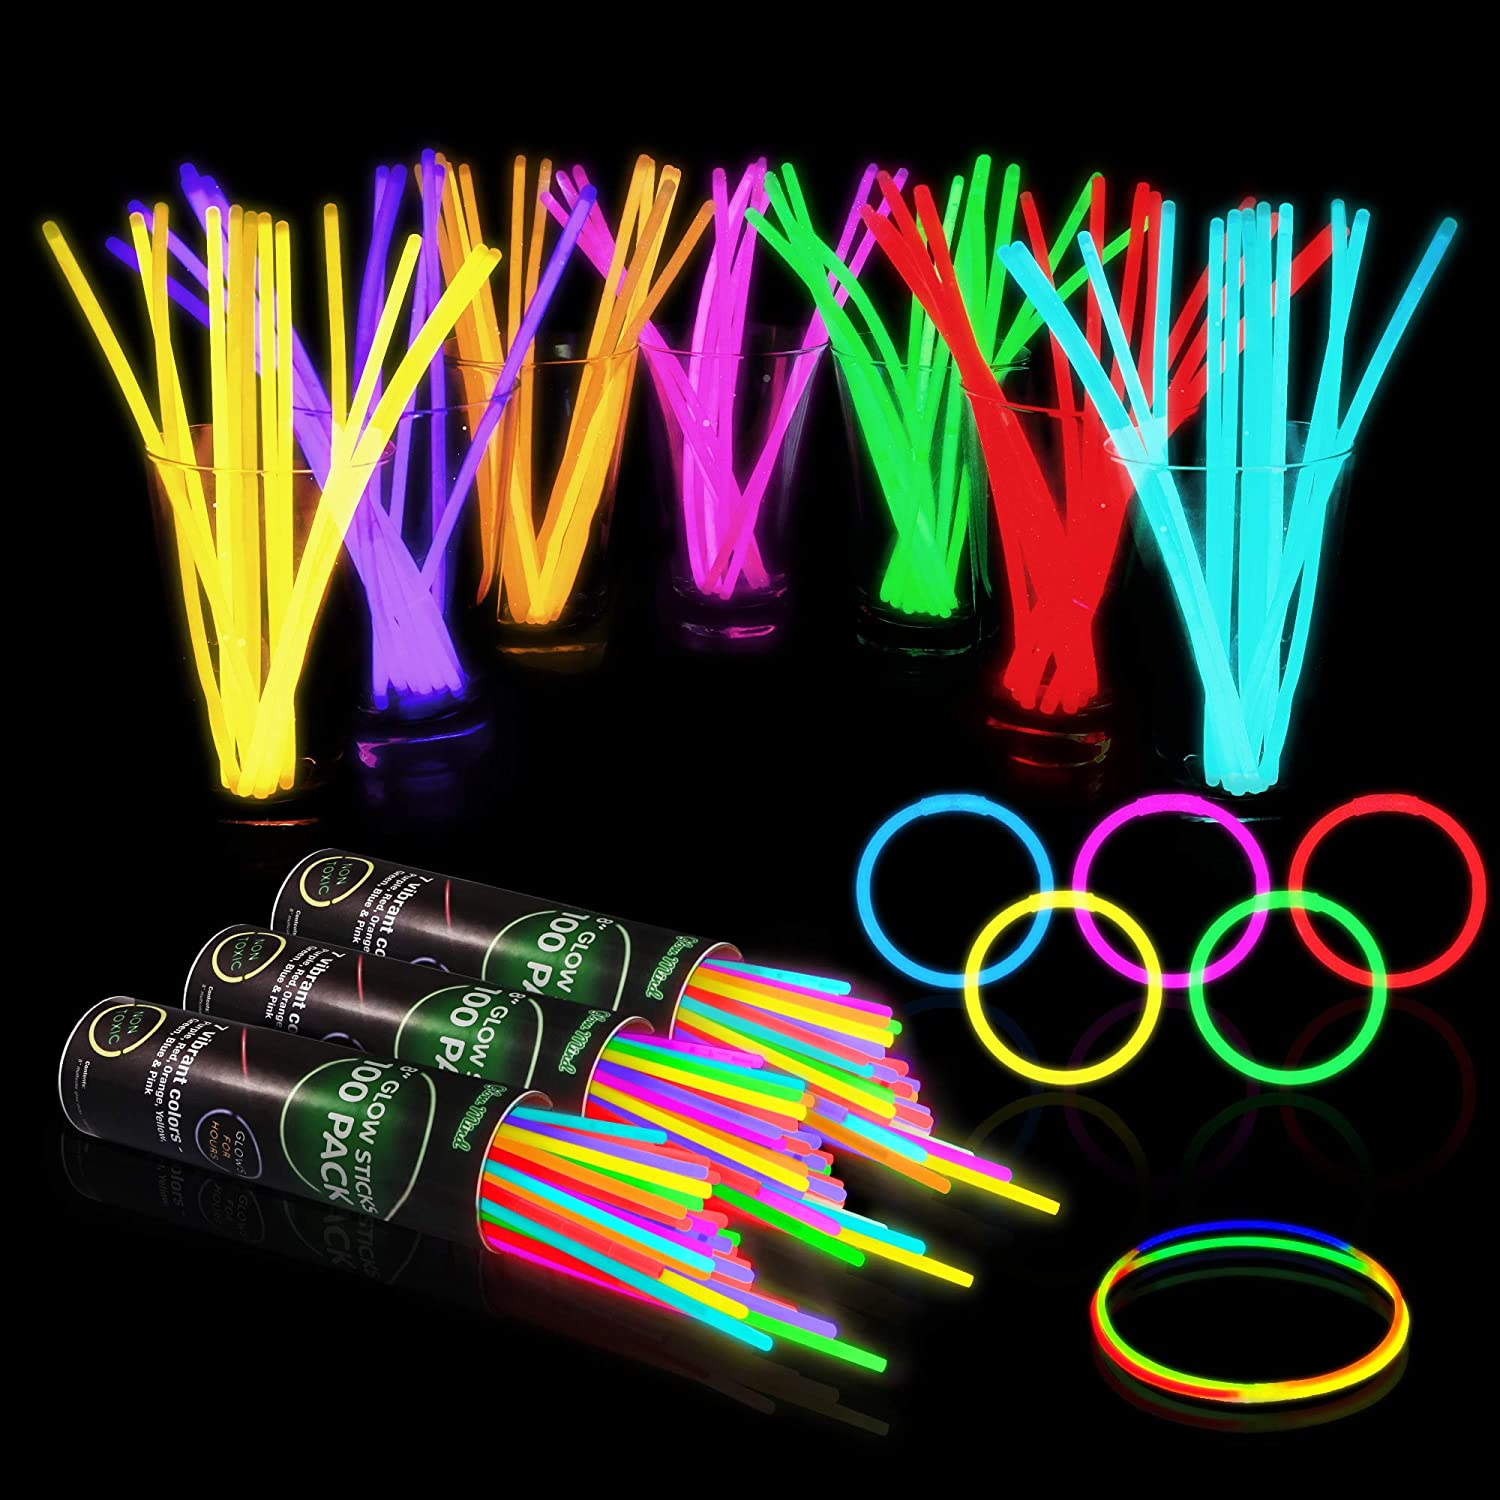 "300 Glow Sticks Bulk Party Supplies - Halloween Glow in The Dark Fun Party Pack with 8"" Glowsticks and Connectors for Bracelets and Necklaces for Kids and Adults"